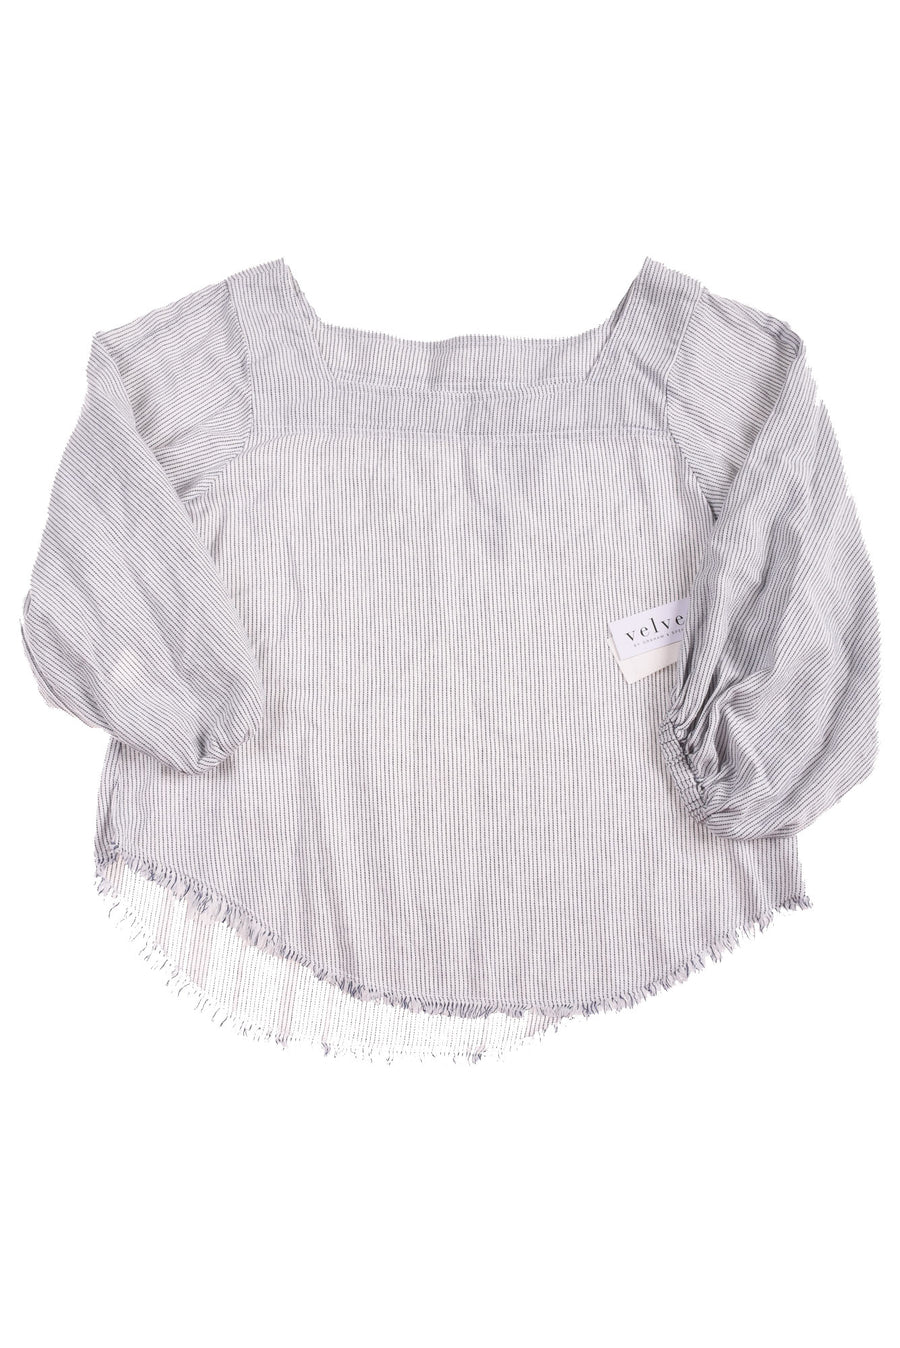 NEW Velvet Women's Top X-Small Garland